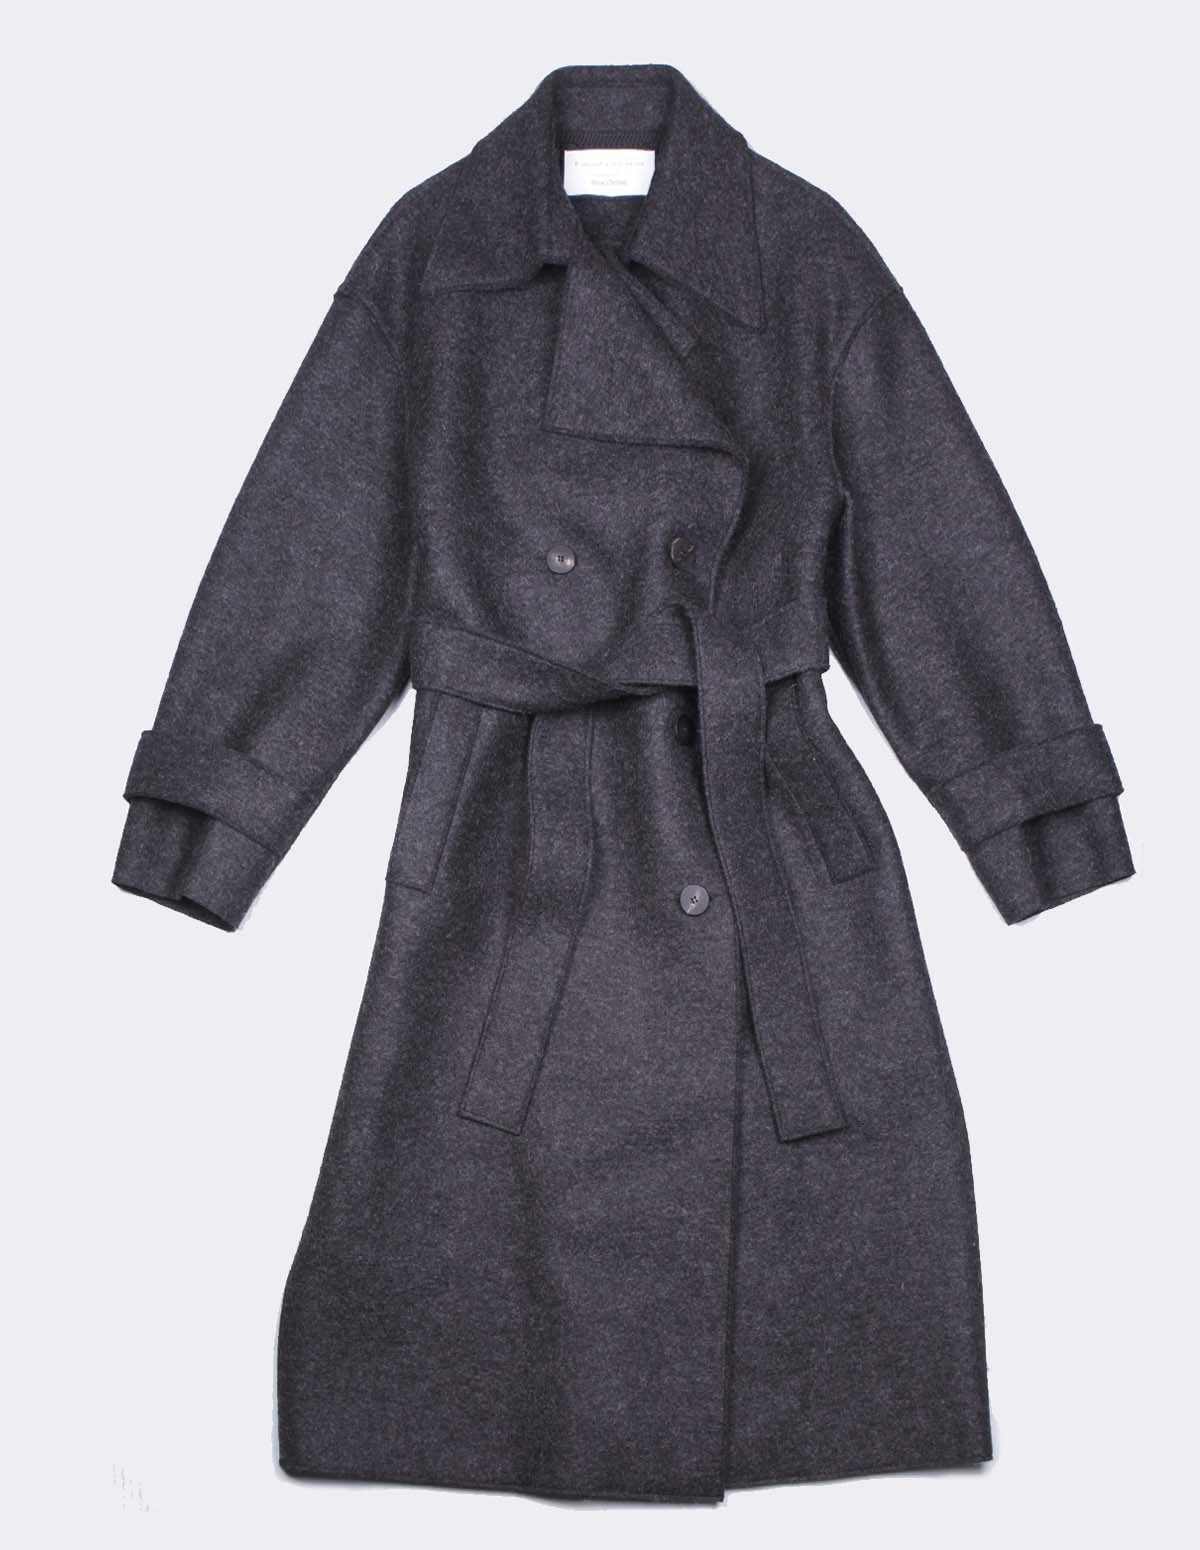 Hwl Oversized Trench Coat - ANTHRACITE